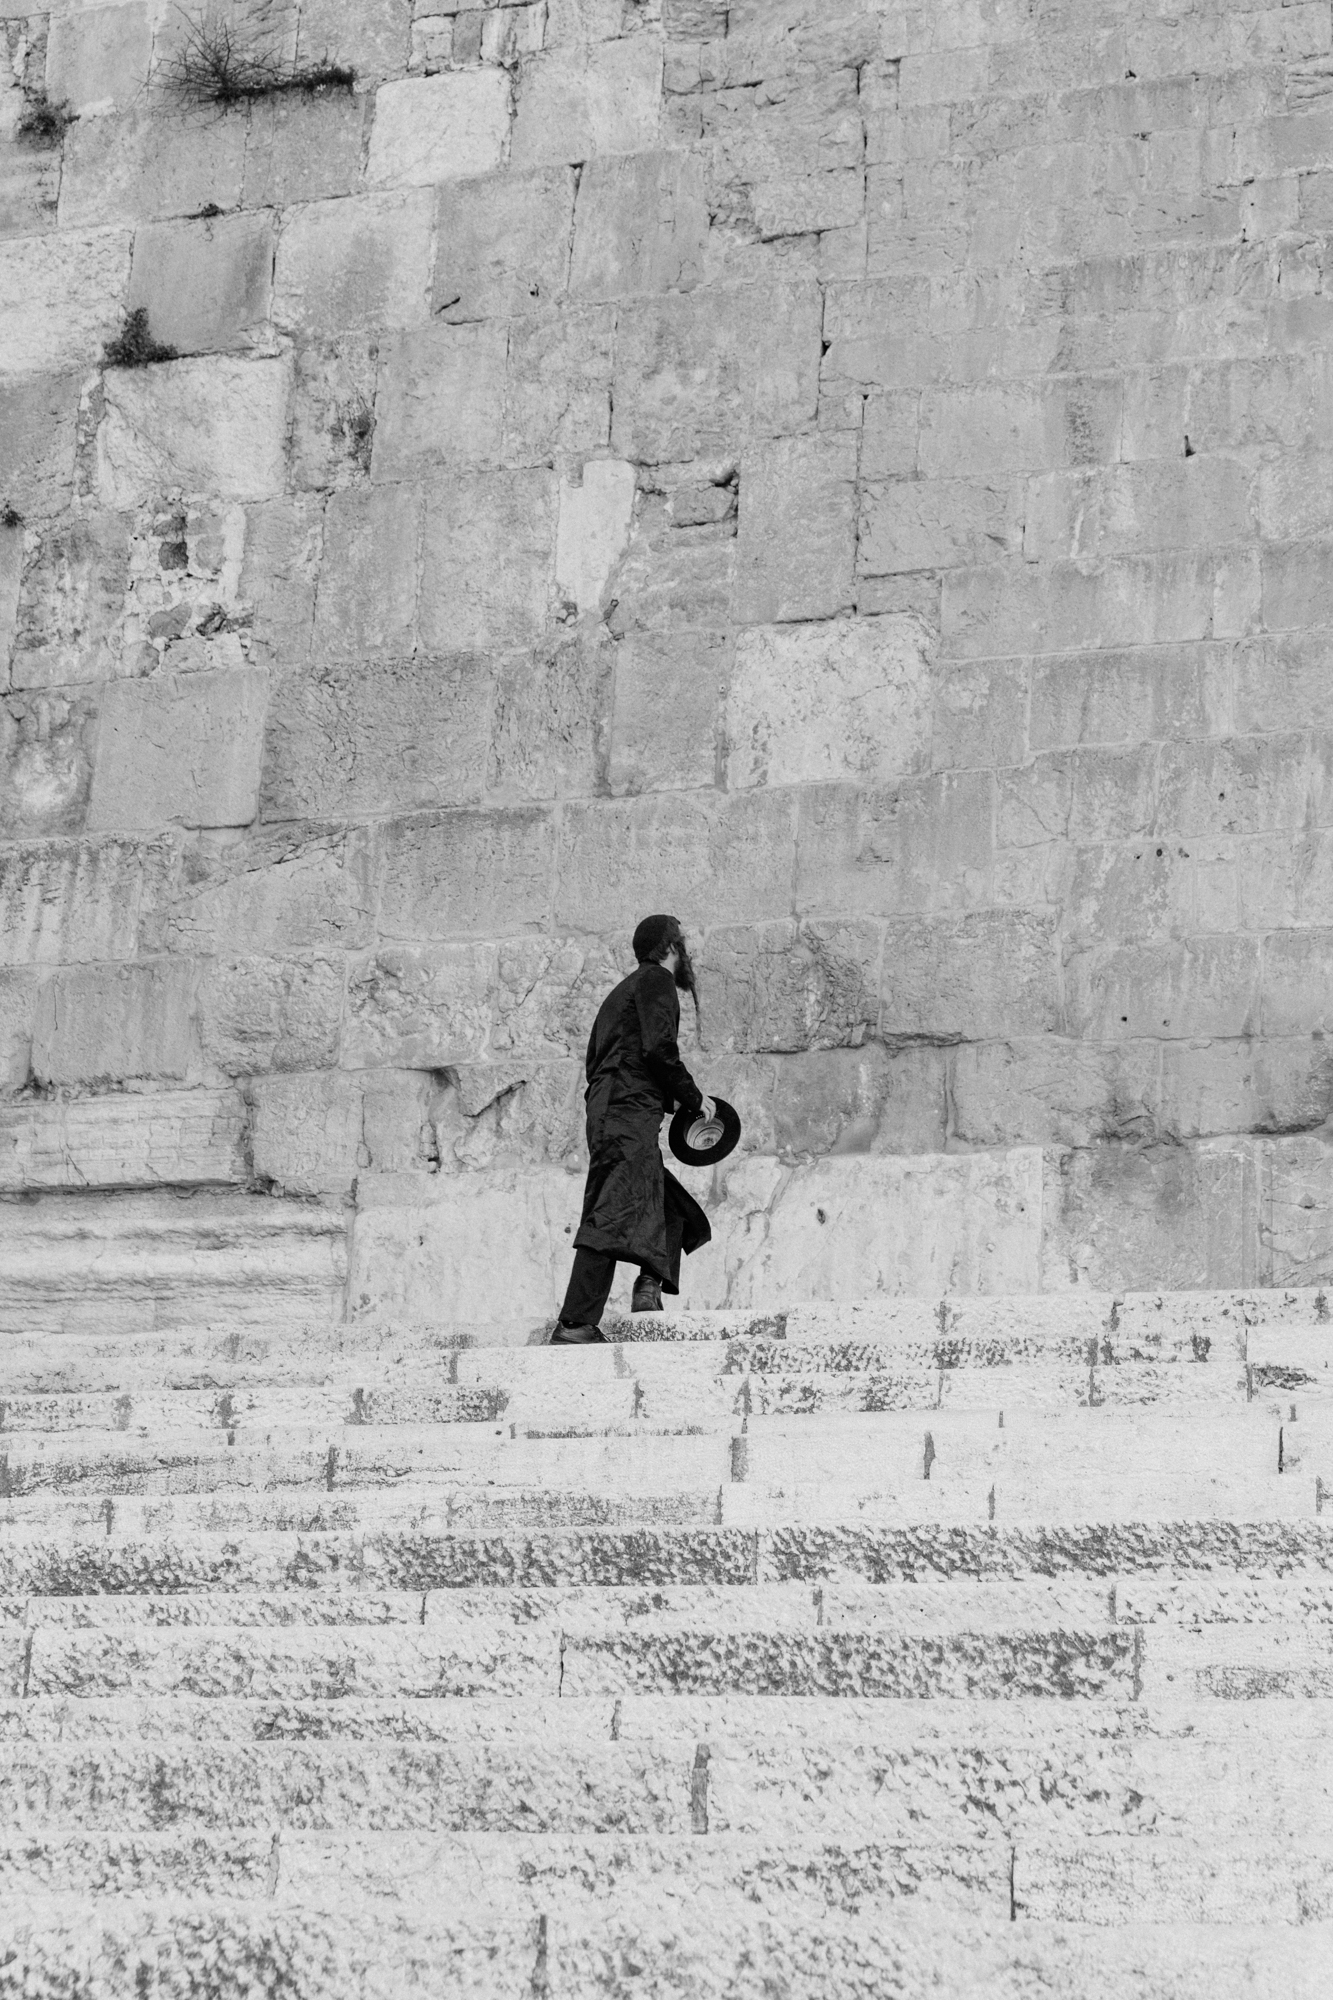 southern steps, israel.   israel collective